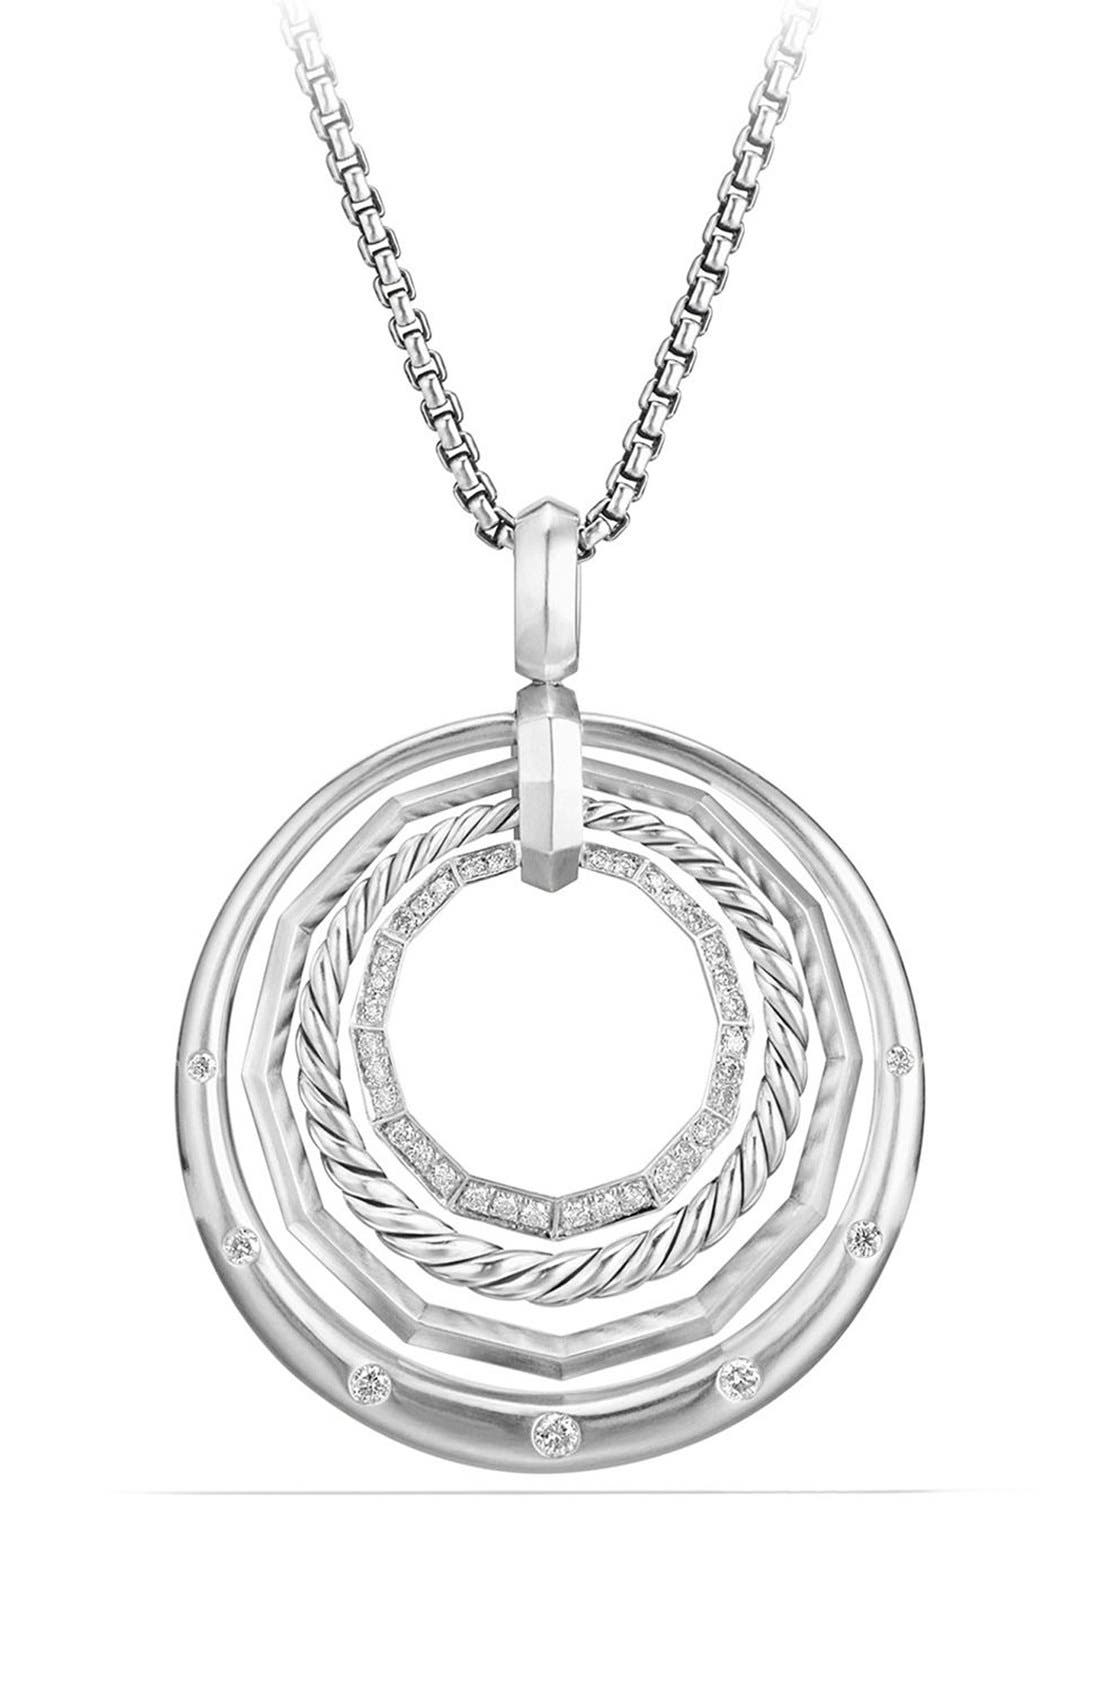 David Yurman Stax Diamond Pendant Necklace